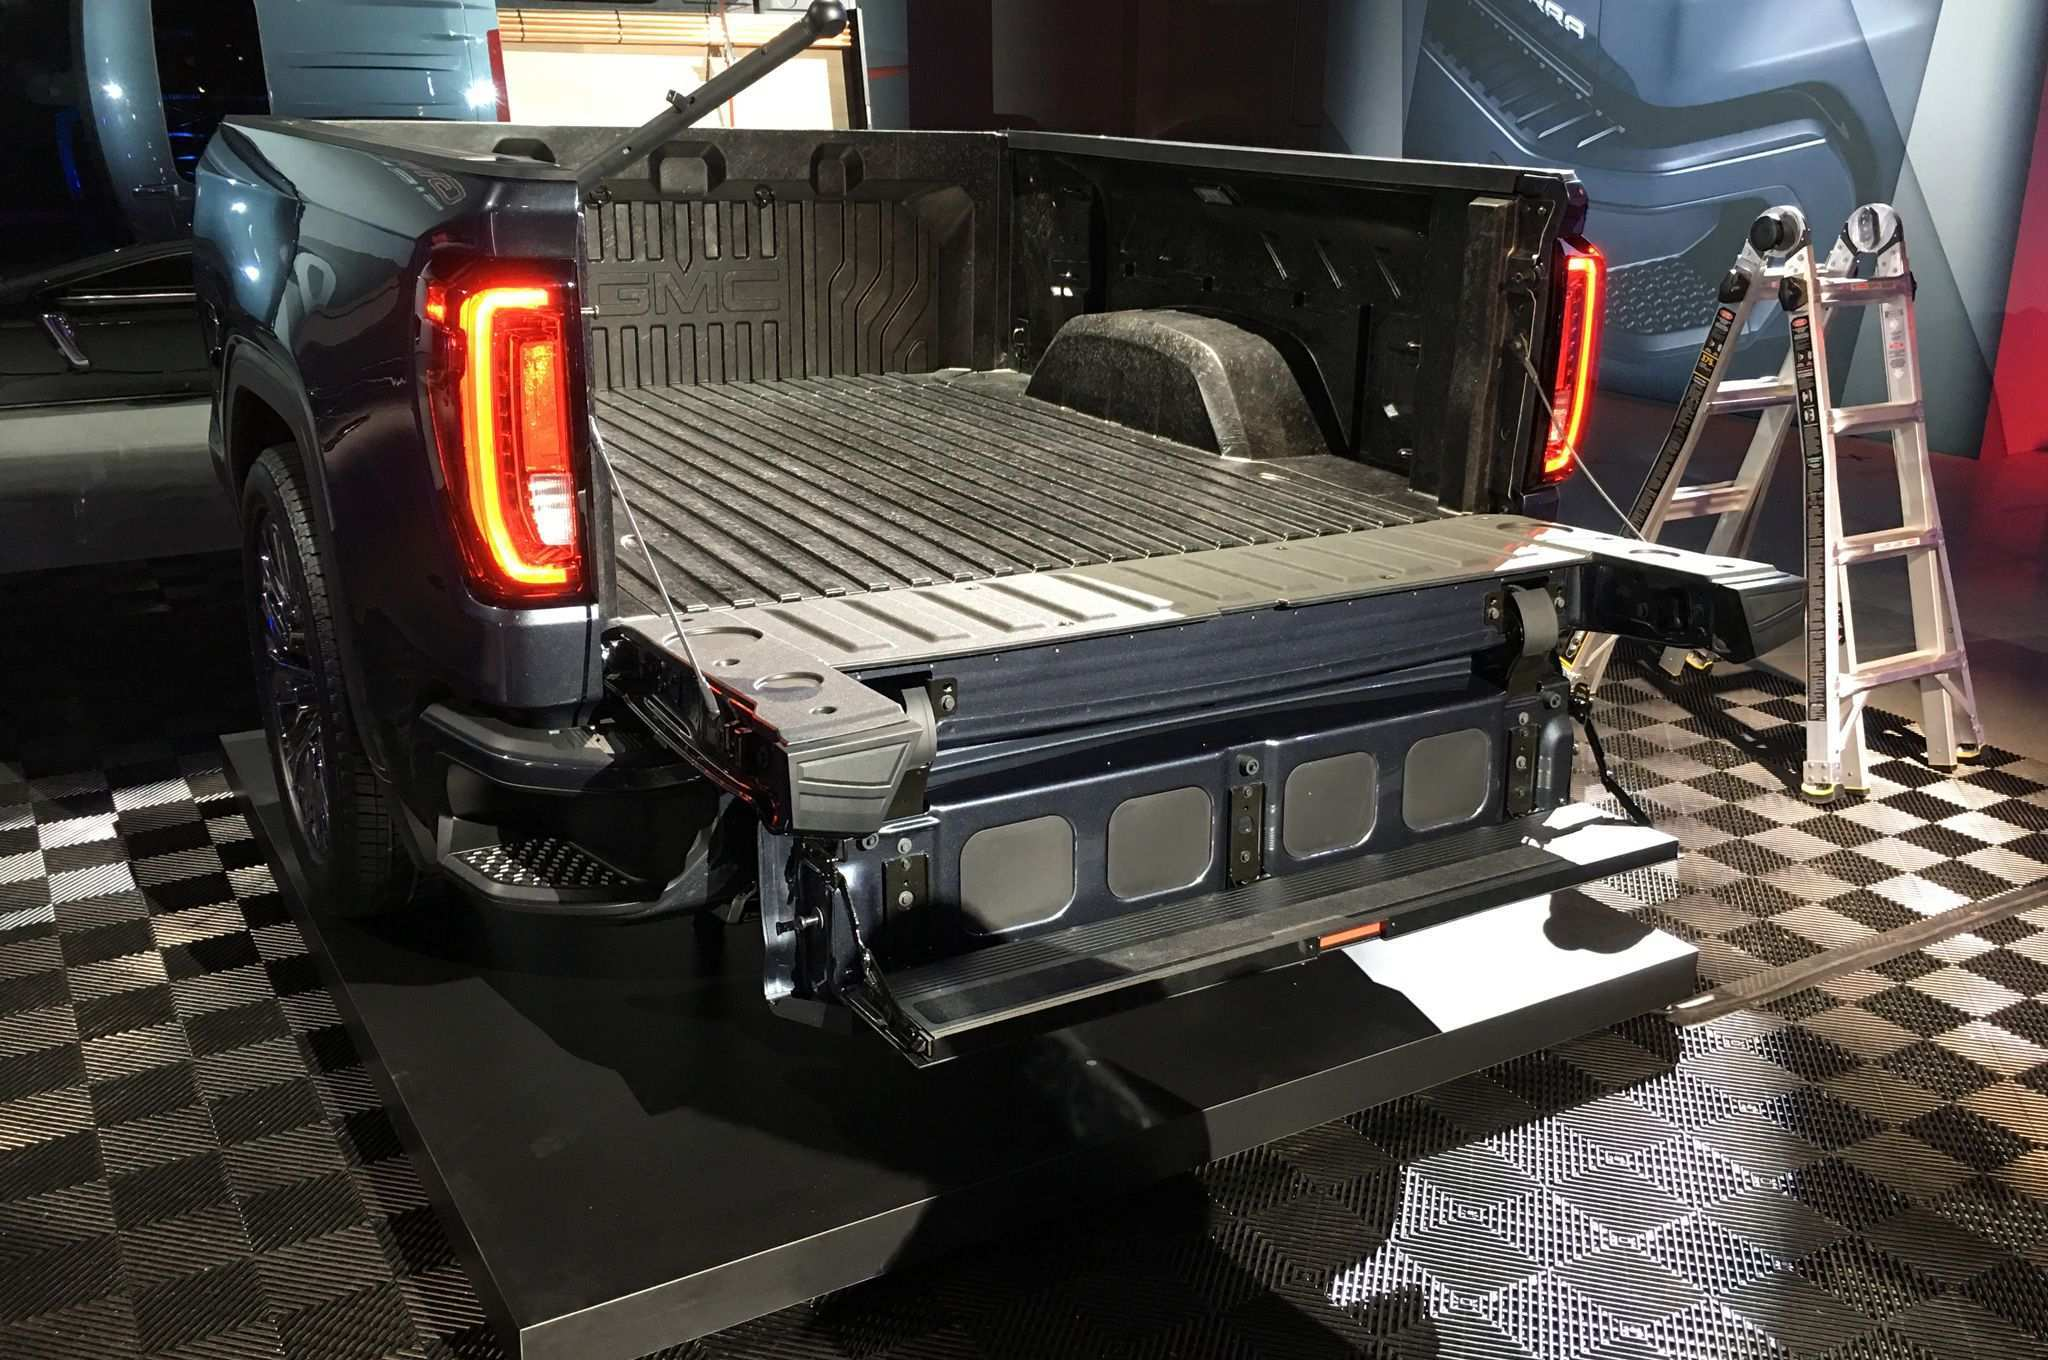 92 Gallery of 2019 Gmc 1500 Tailgate Price and Review with 2019 Gmc 1500 Tailgate